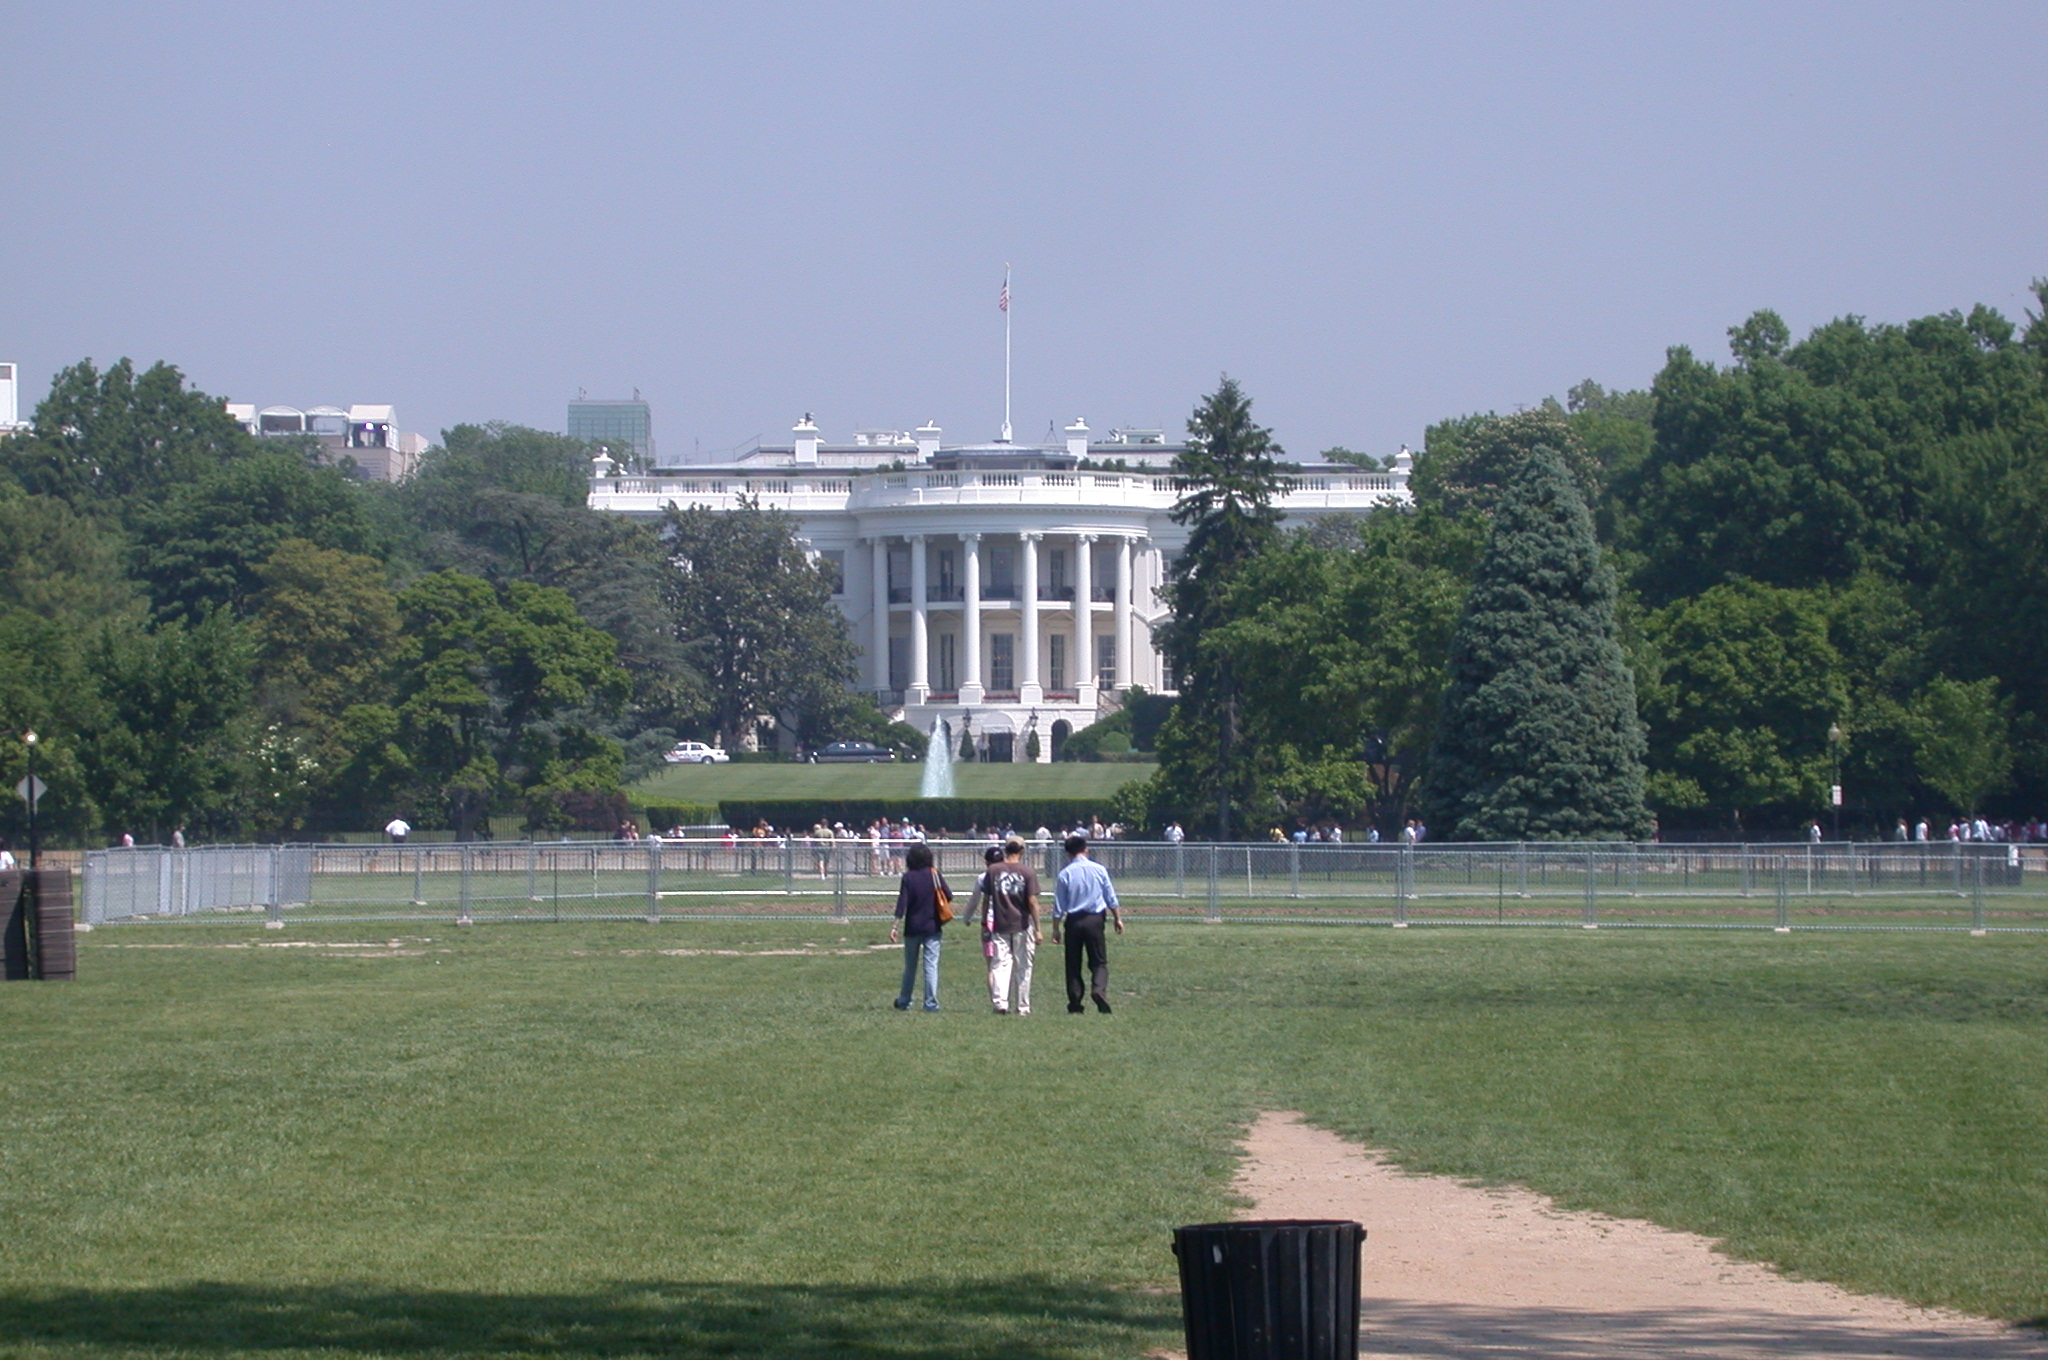 DSCN0051.jpg - The White House by day.